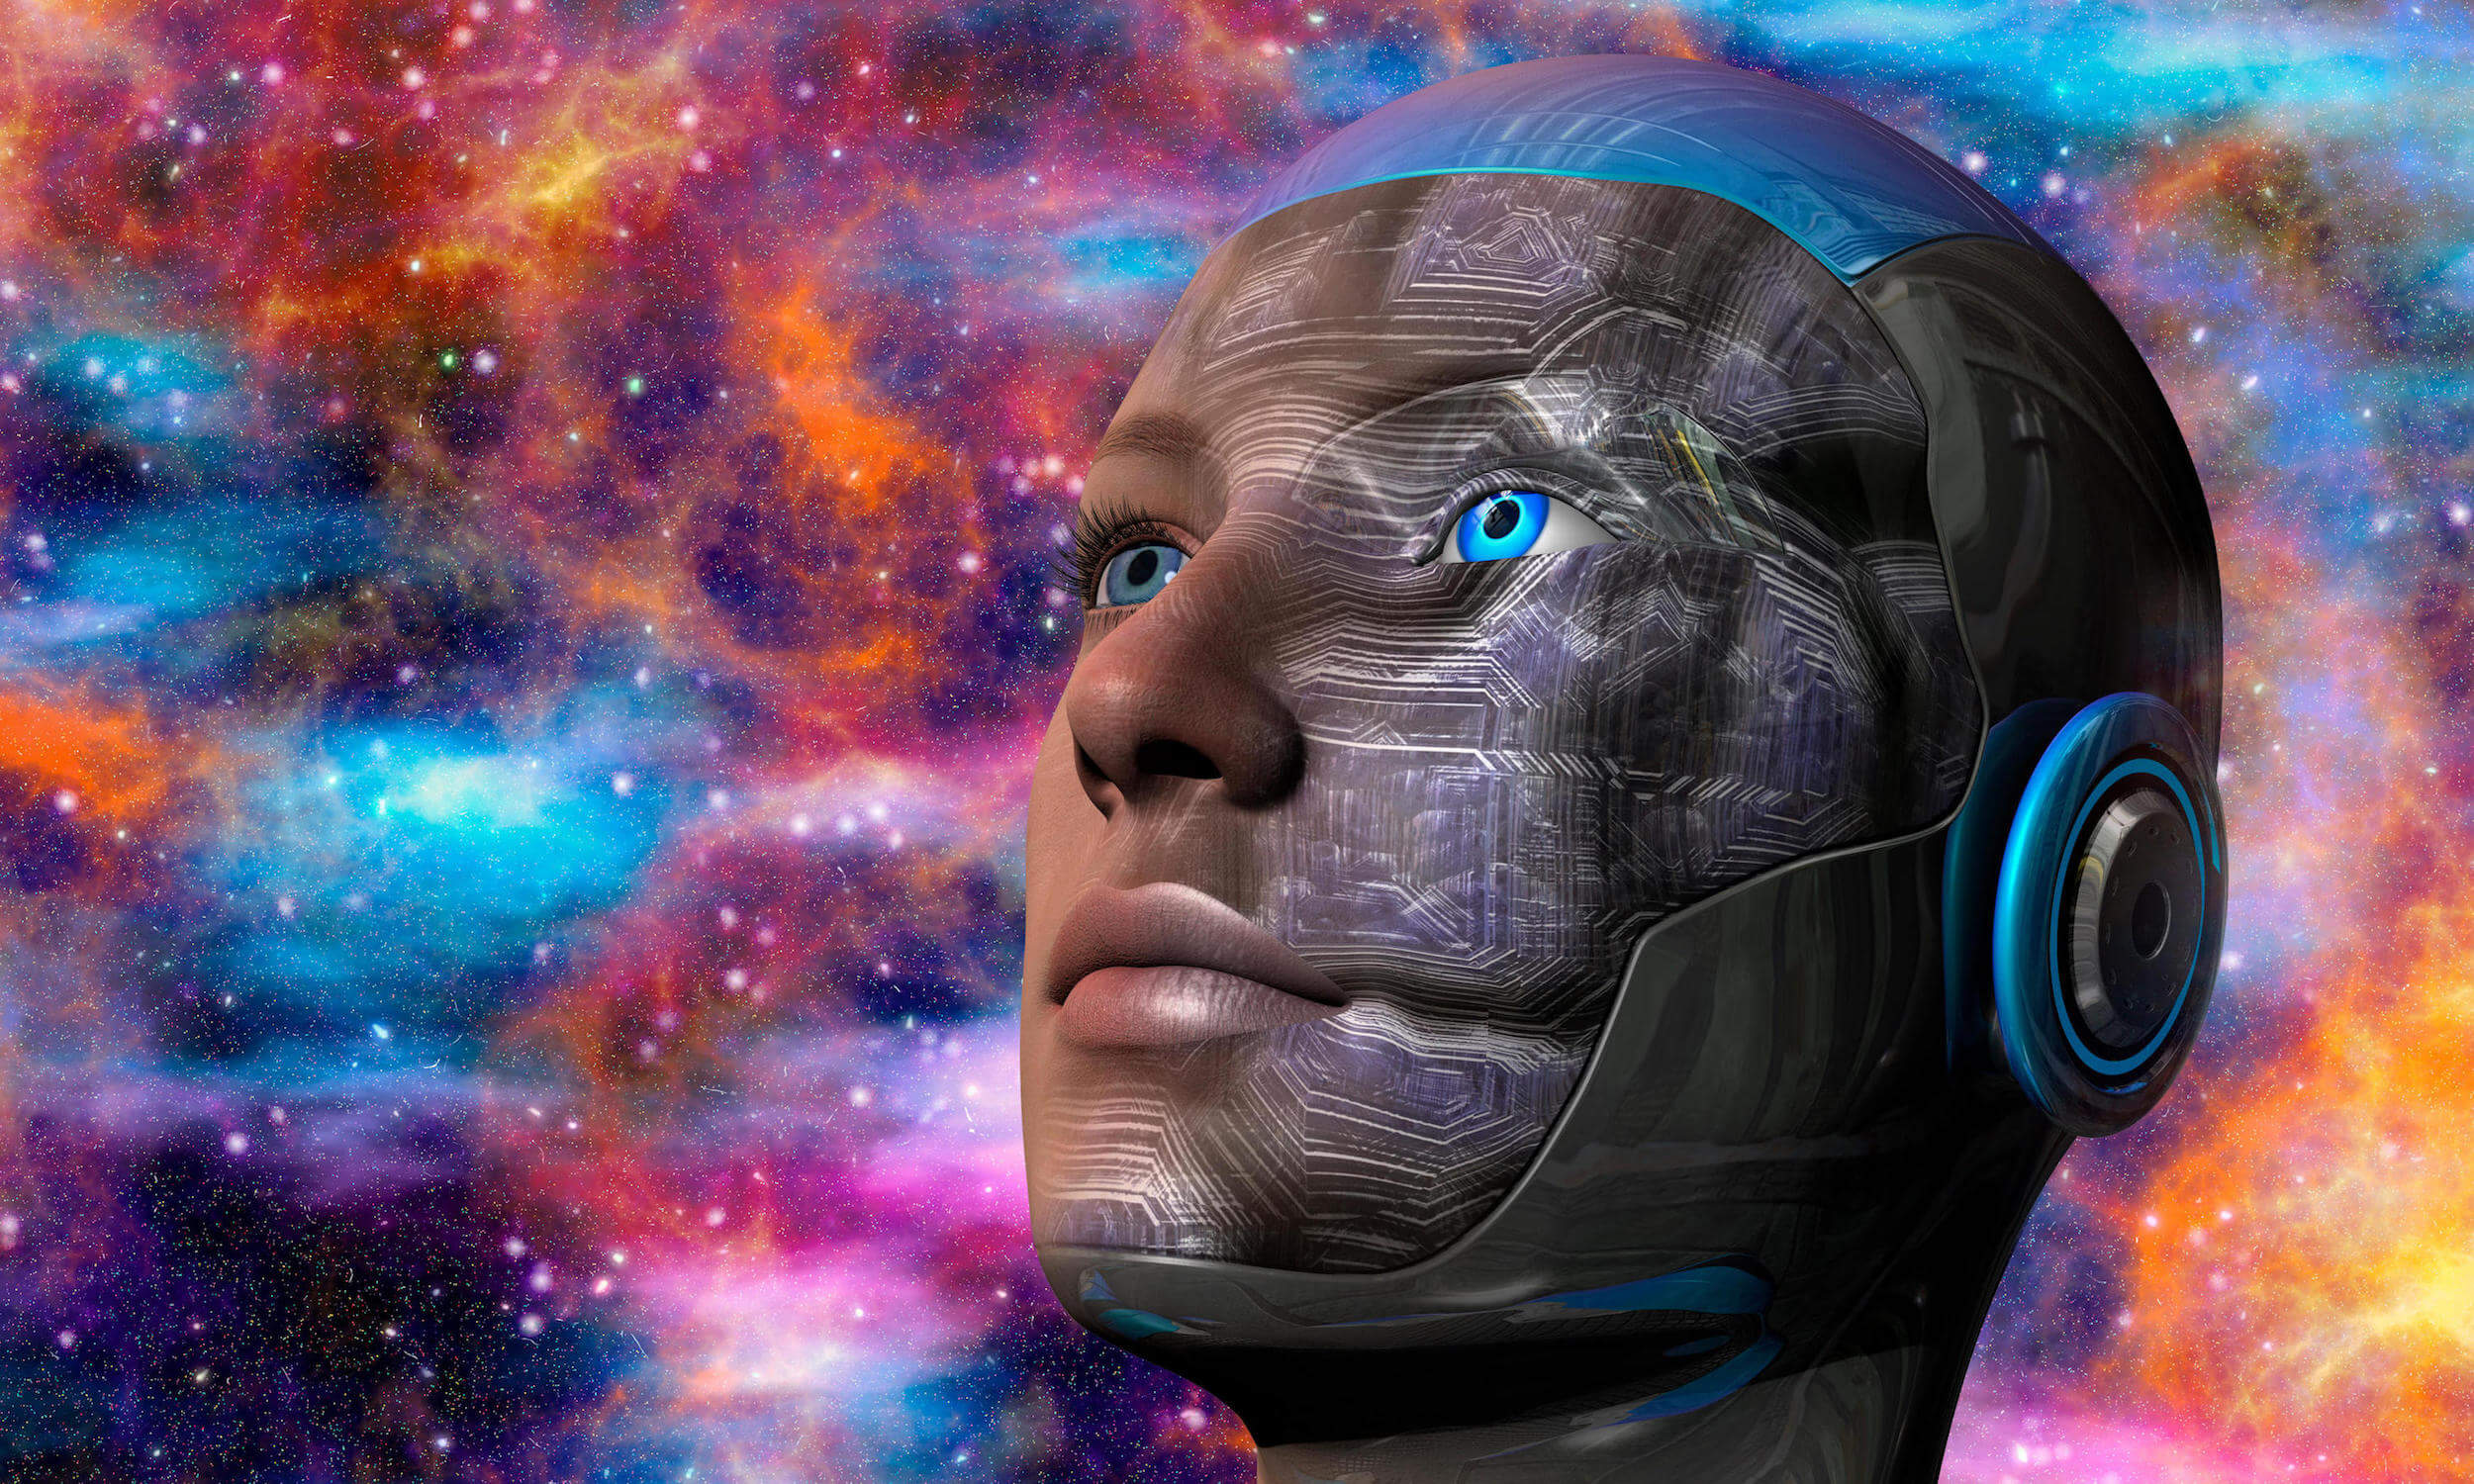 Cyborg woman with deep space background